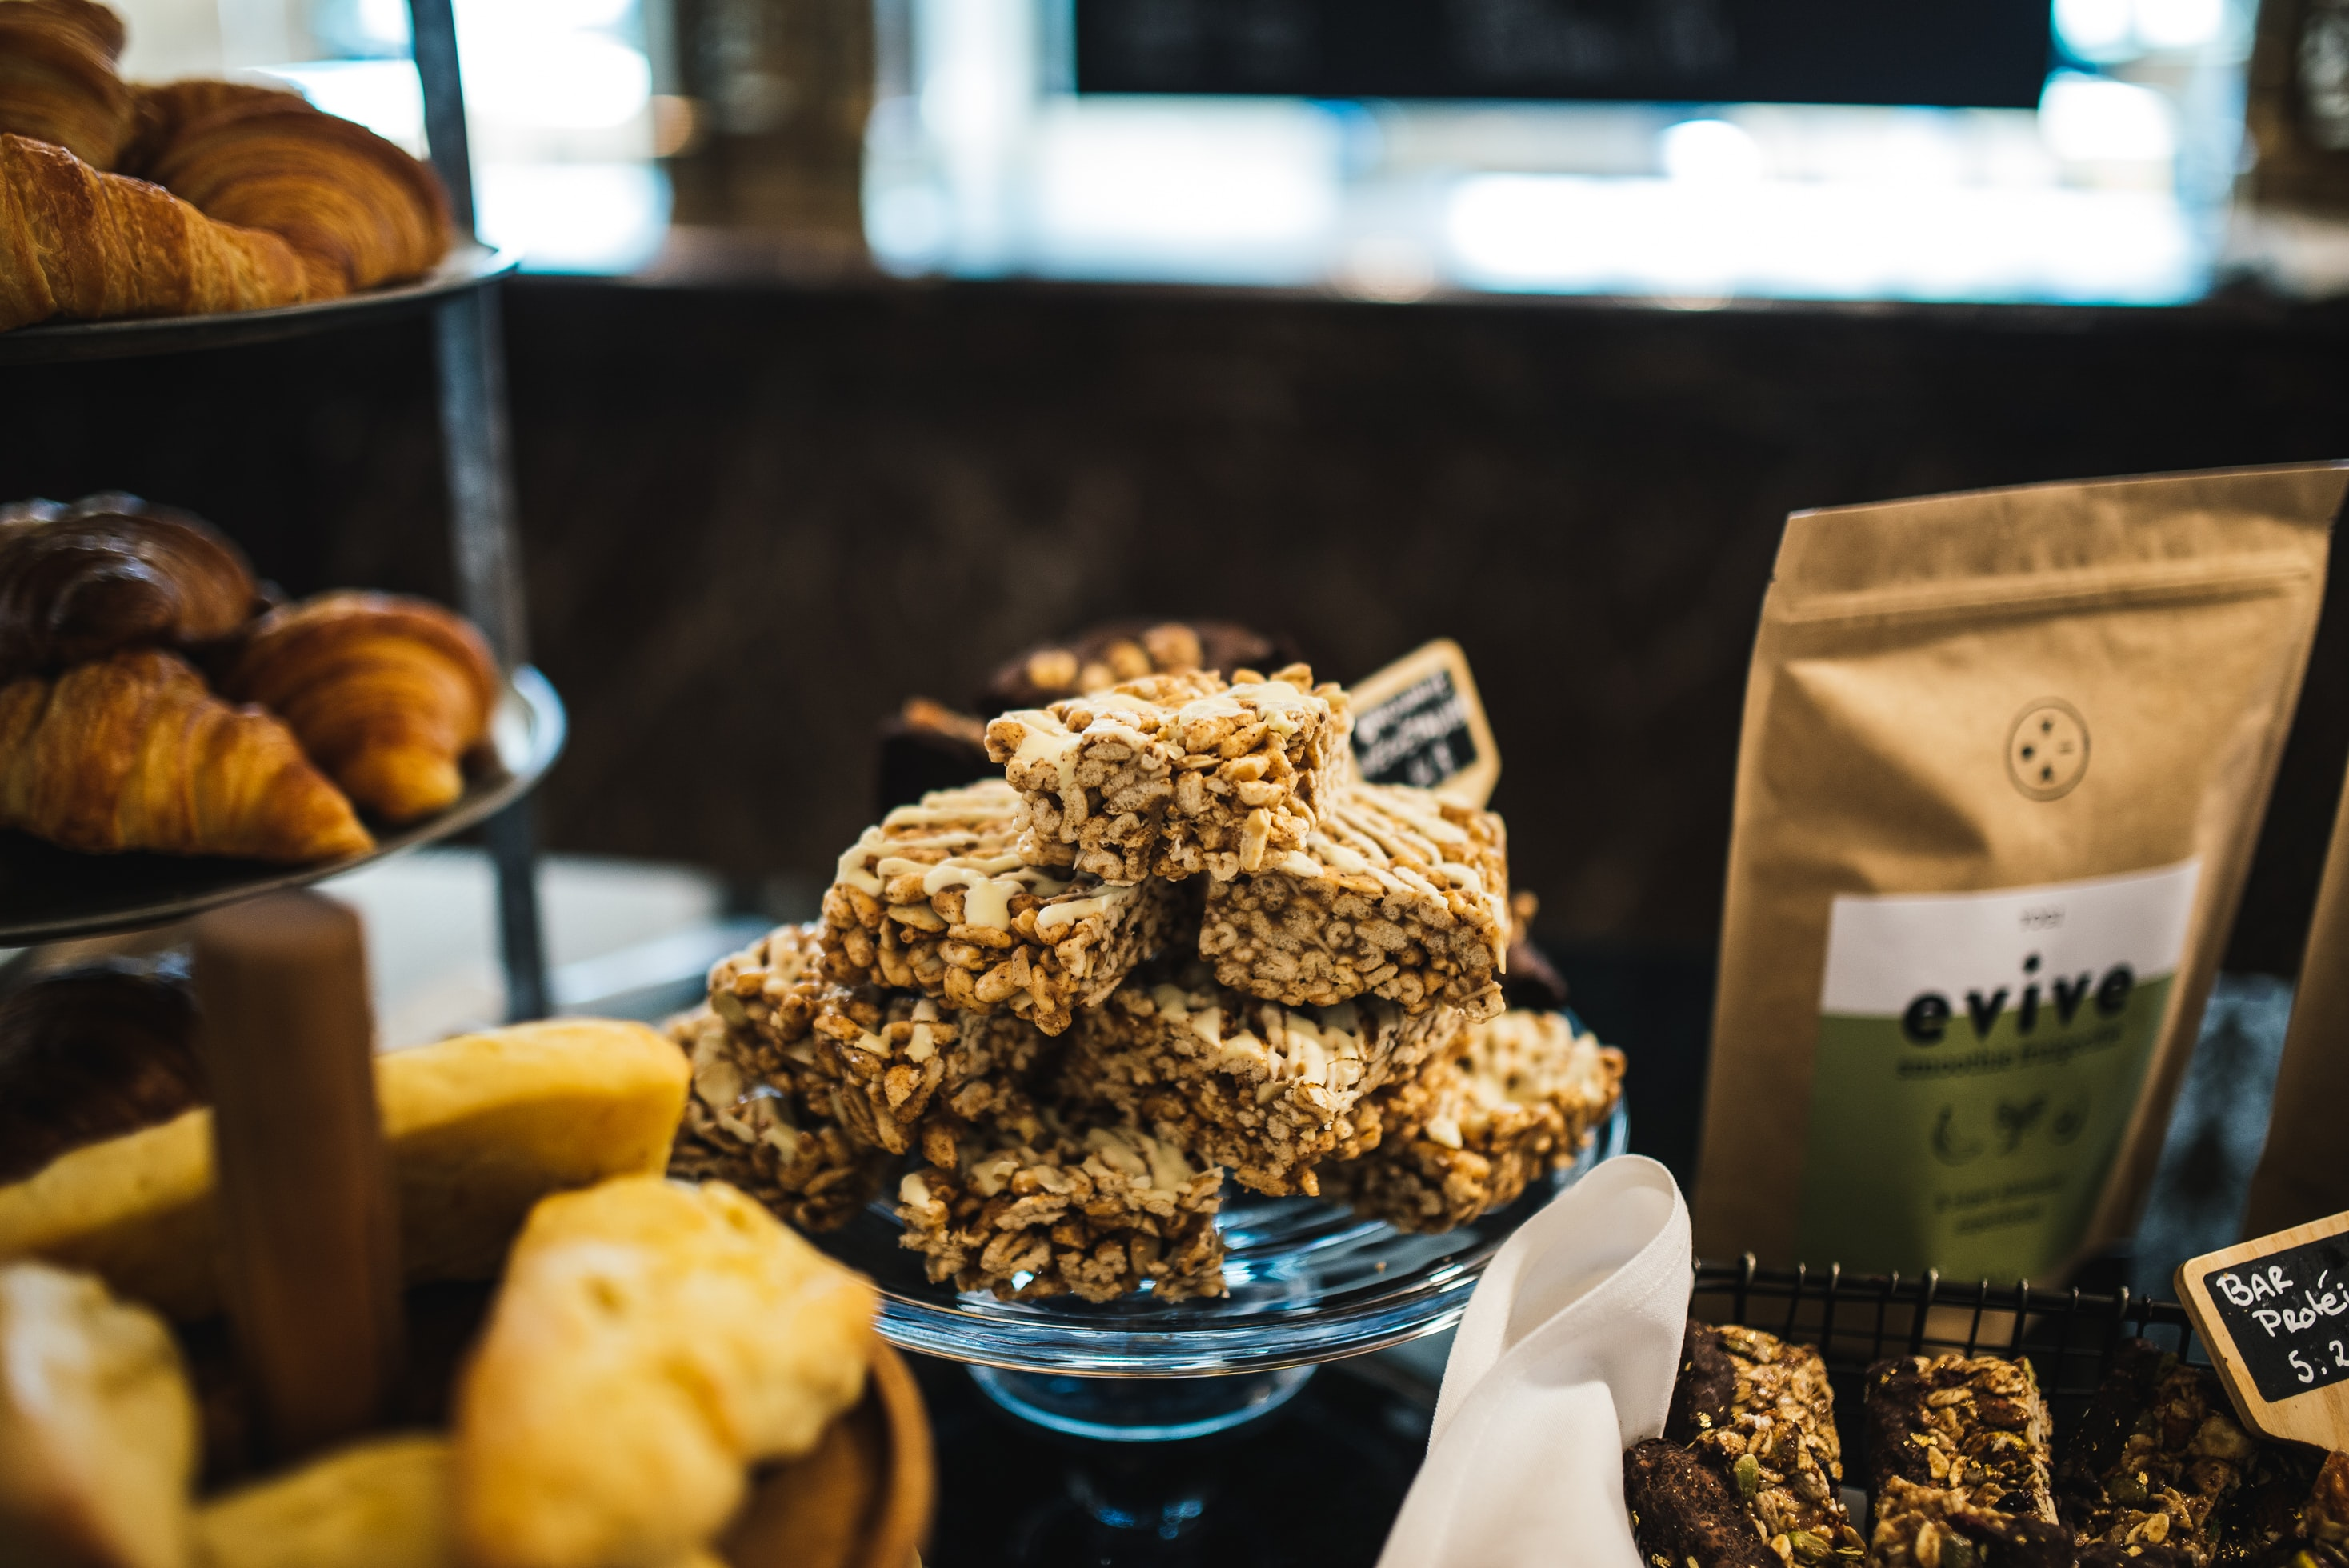 Granola cereal bars and pastries at a cafe bakery